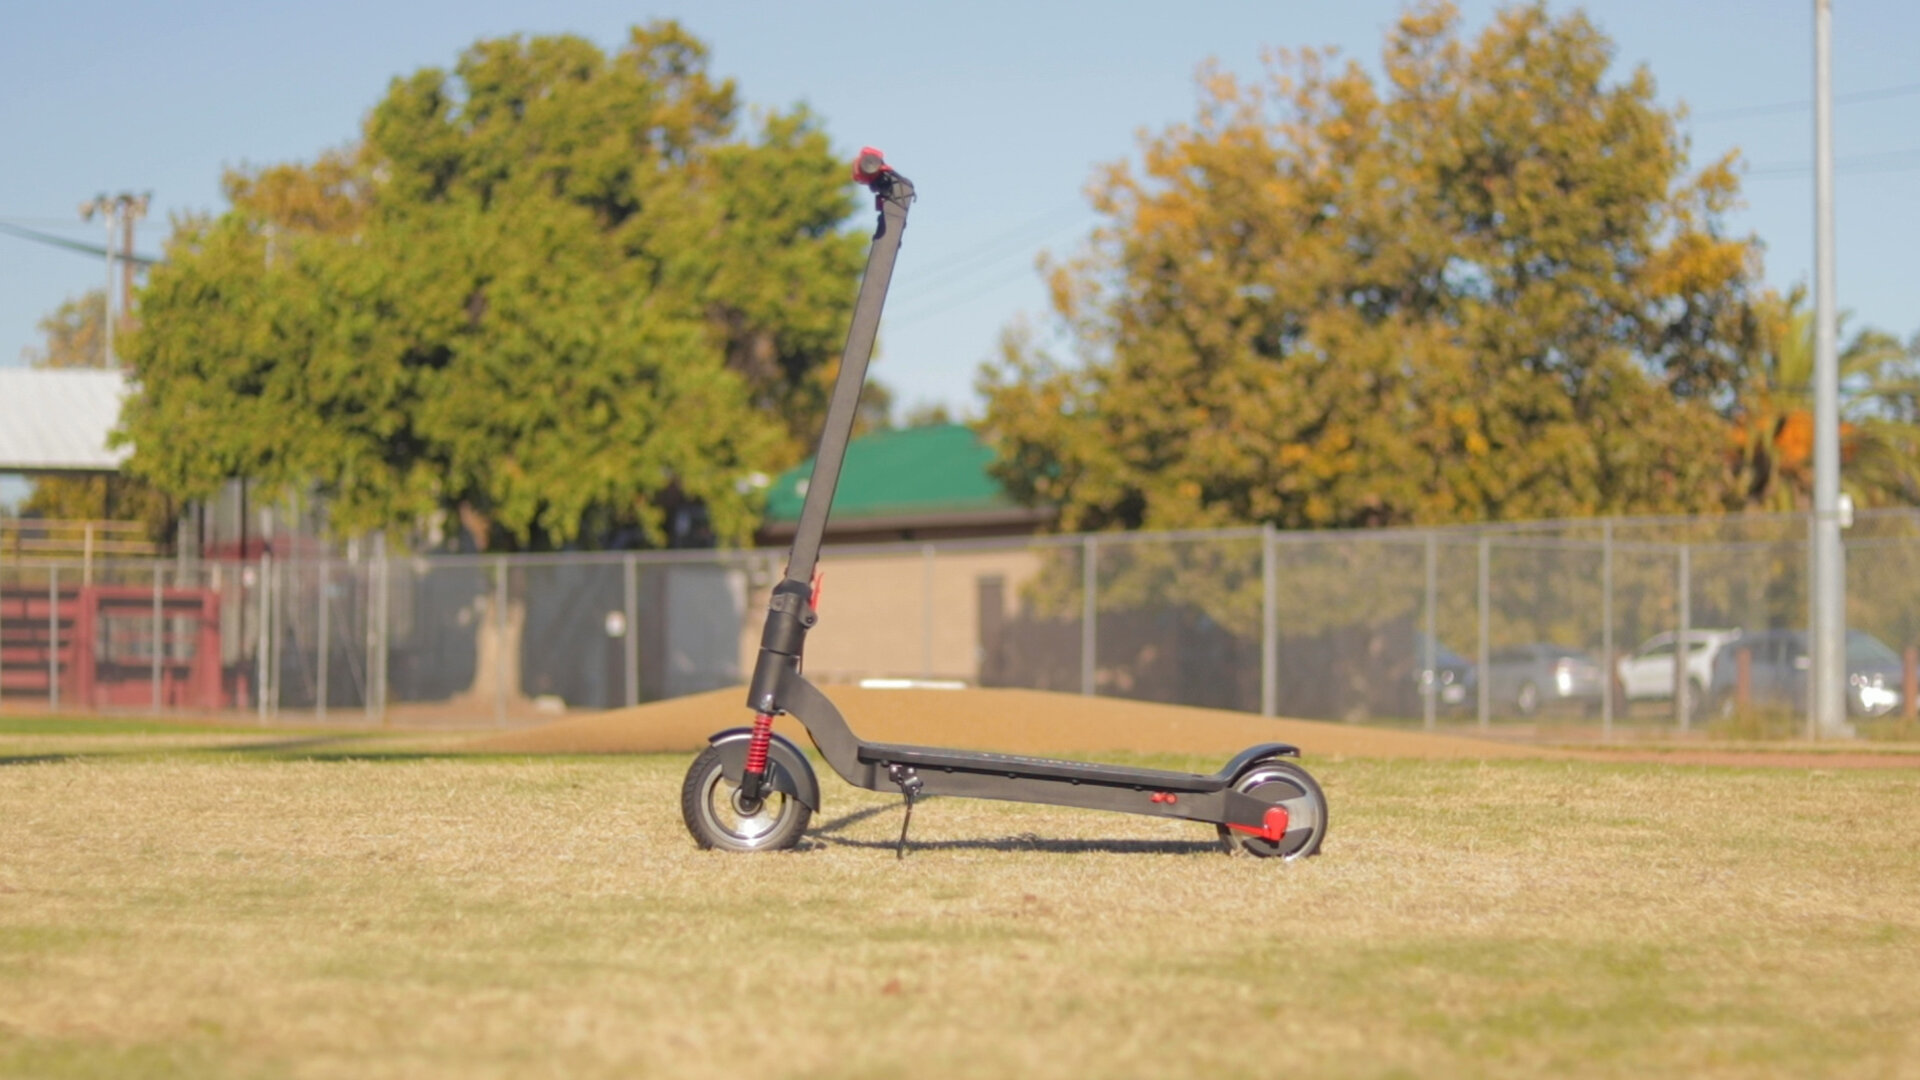 tianrun-r3s-electric-scooter-review-2019-profile.jpg